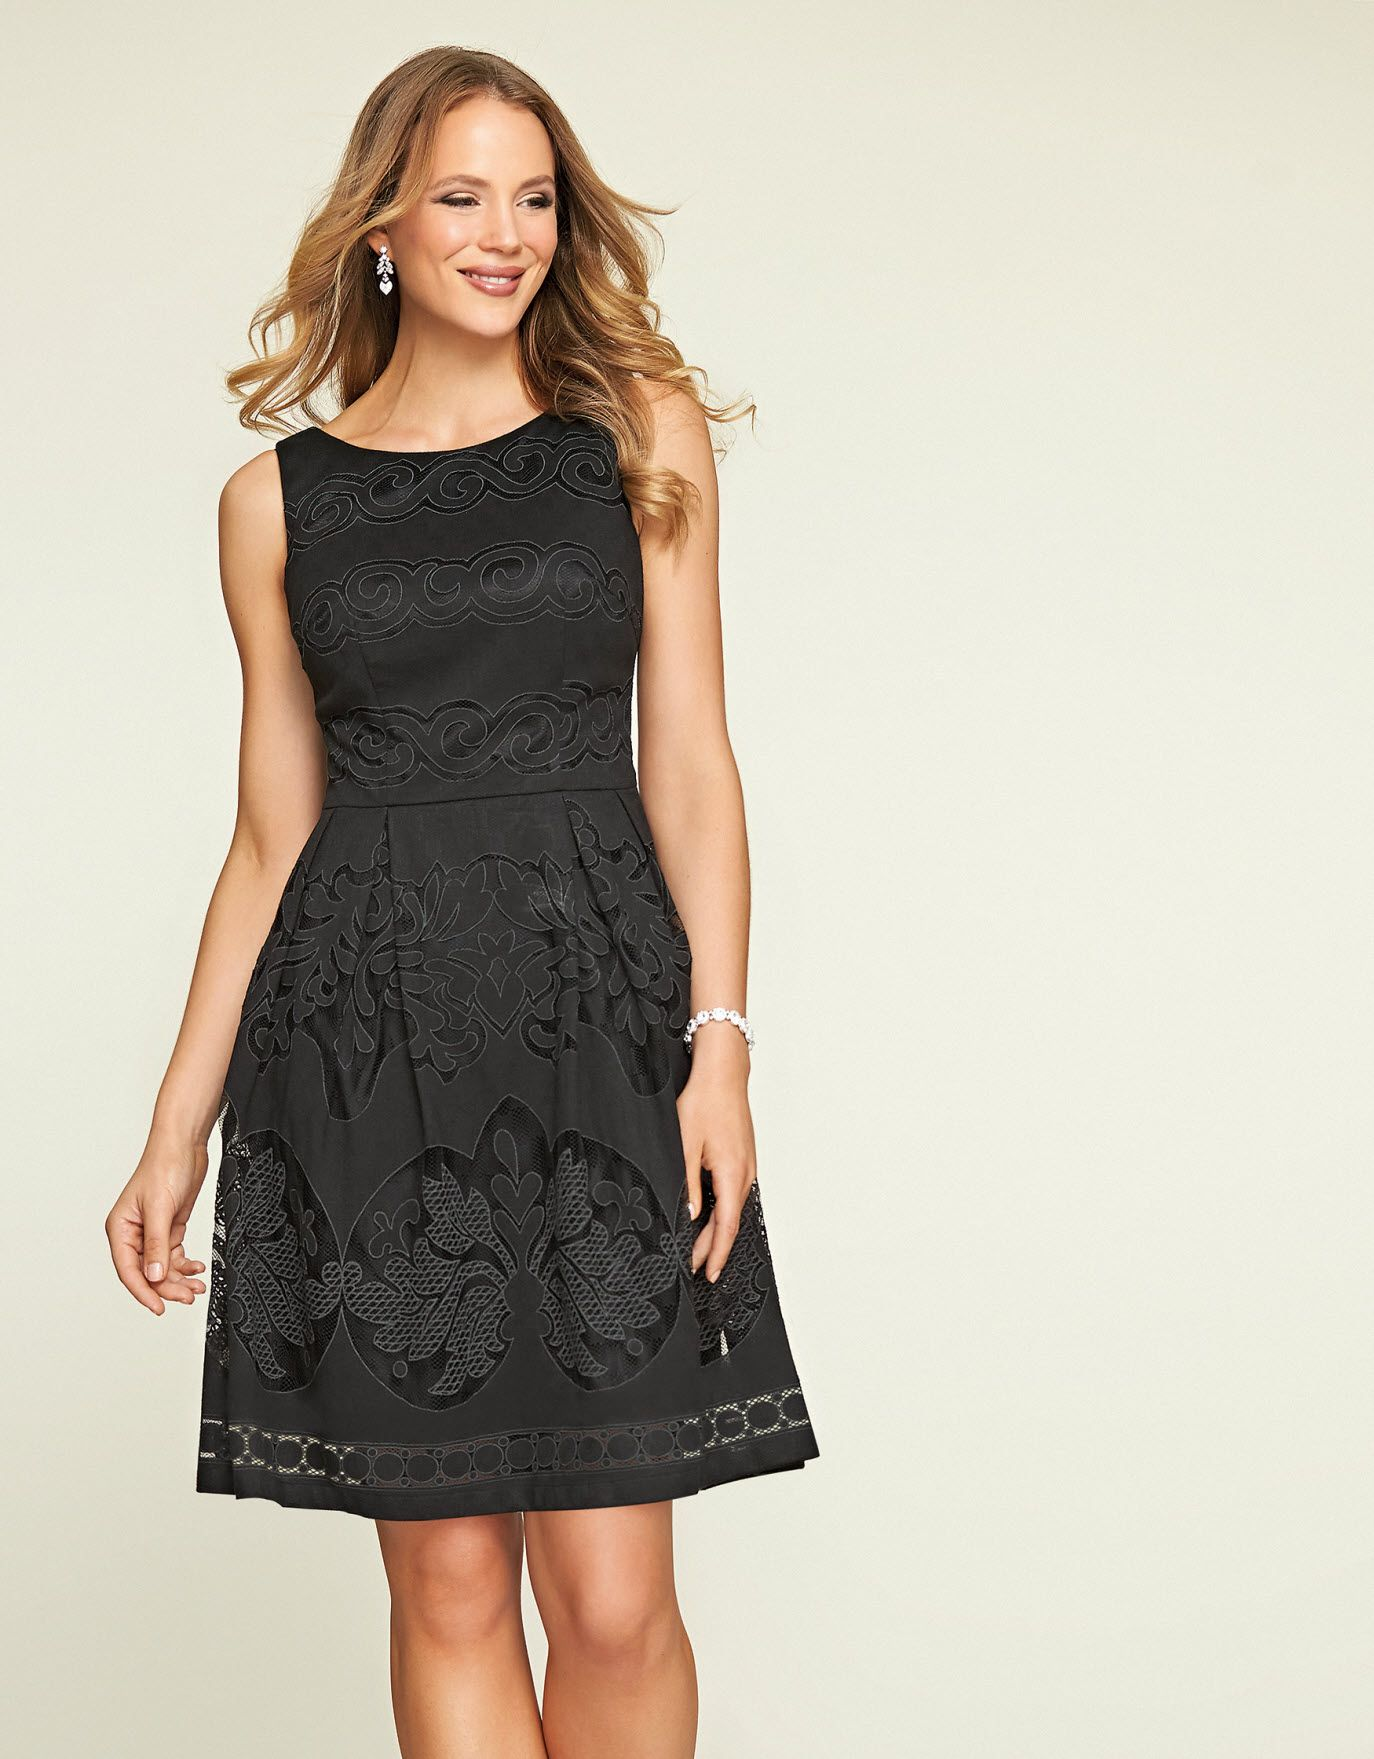 90c688d2e8ec Lace Prom Dress in Black by Pepperberry | fall style | Pinterest